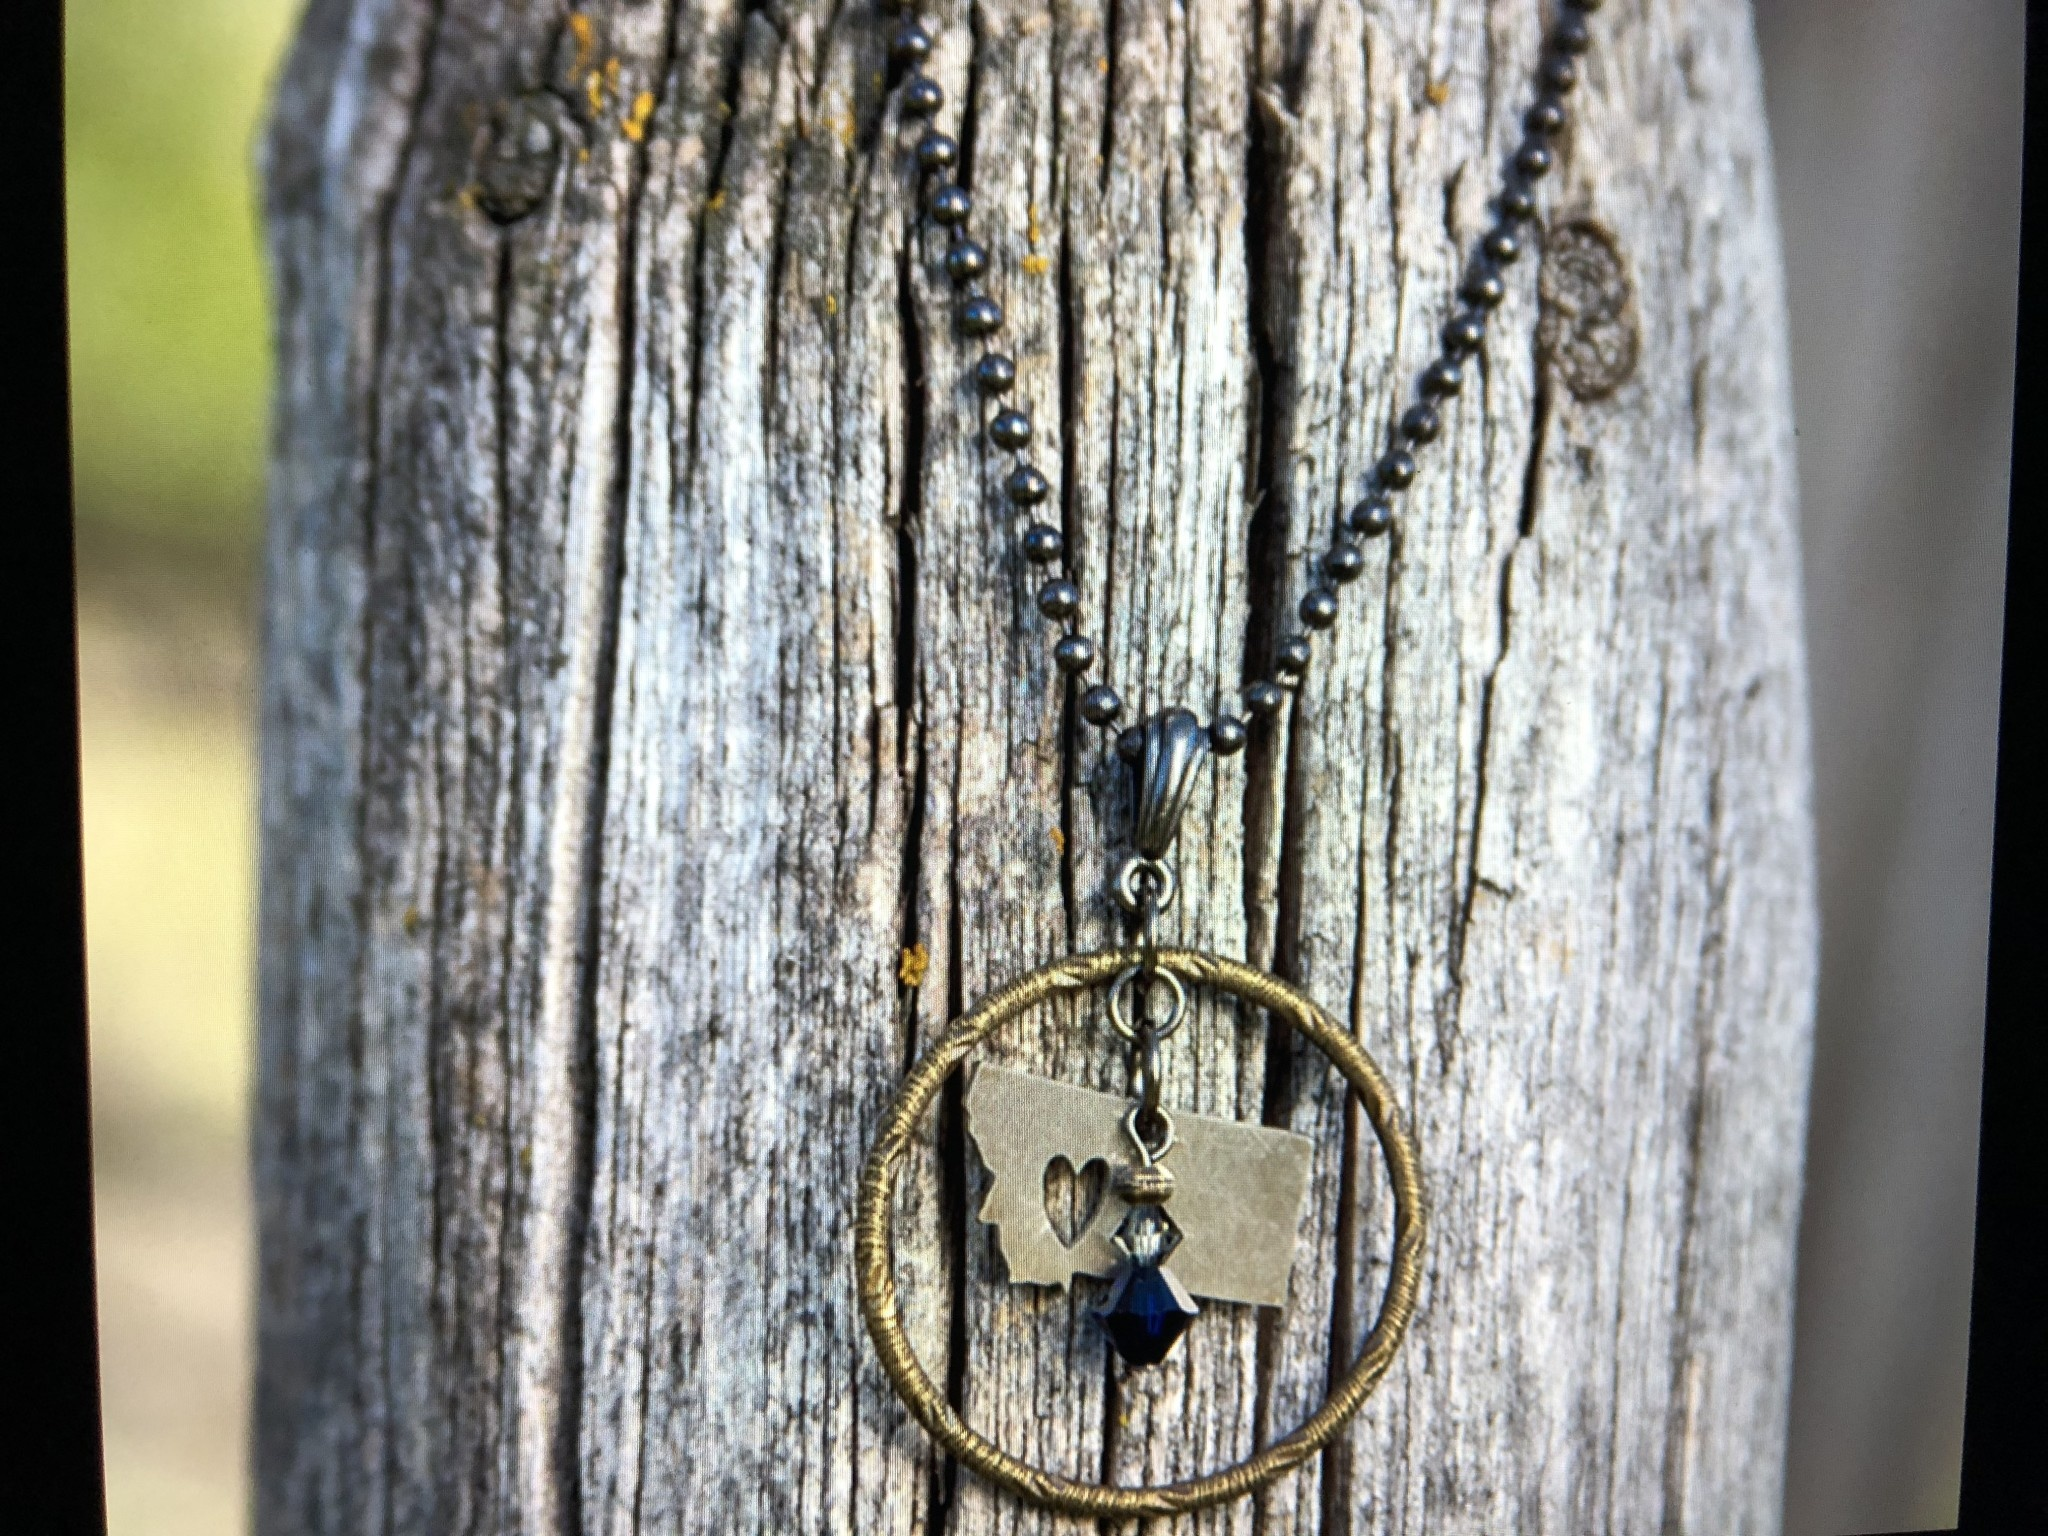 cool water jewelry NC311-123 Necklace: Textured Ring & Montana Charm